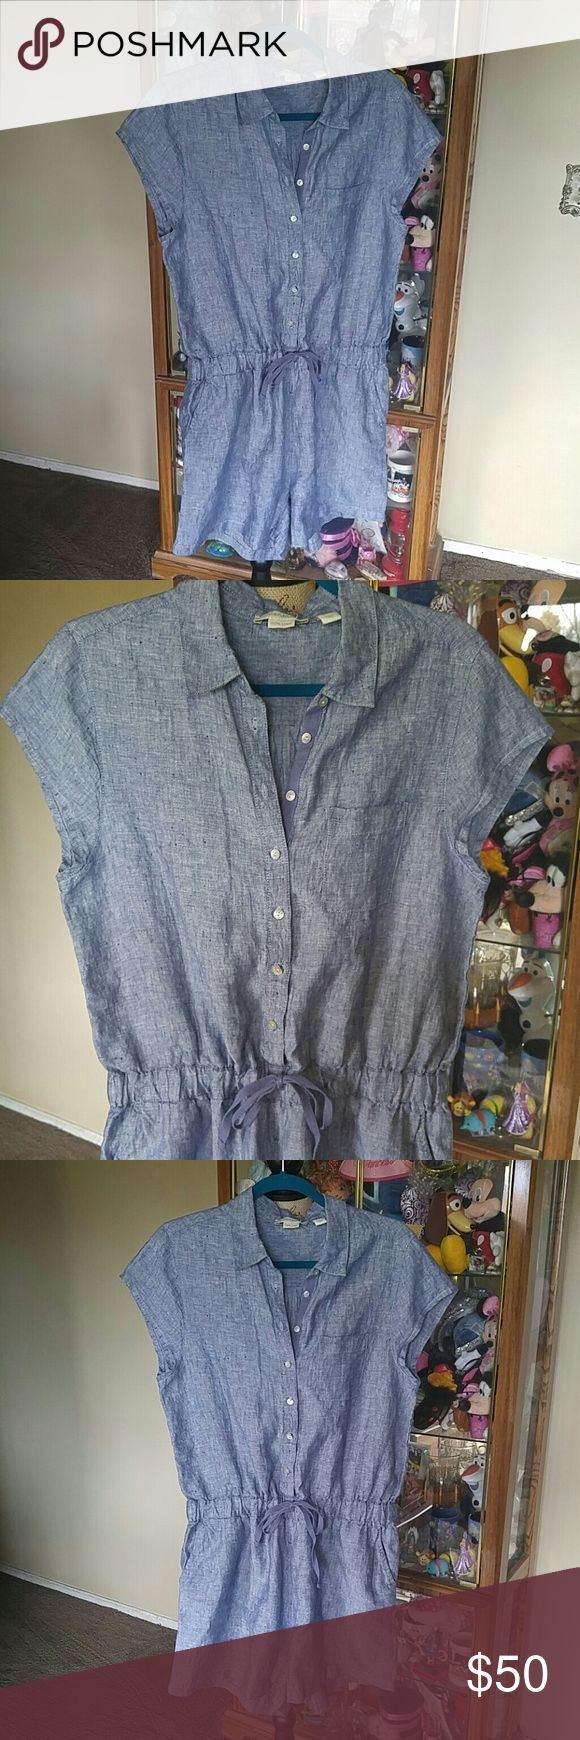 Cynthia Rowley 100% linen cotton short romper The Celica for and Cynthia Rowley size large 100% linen cotton Romper is ready to sell no holes or tears or stains. It is absolutely beautiful all the buttons are attached. A wonderful name brand and it's ready to sell. No low-ball offers will be accepted on this item no trades Cynthia Rowley Shorts